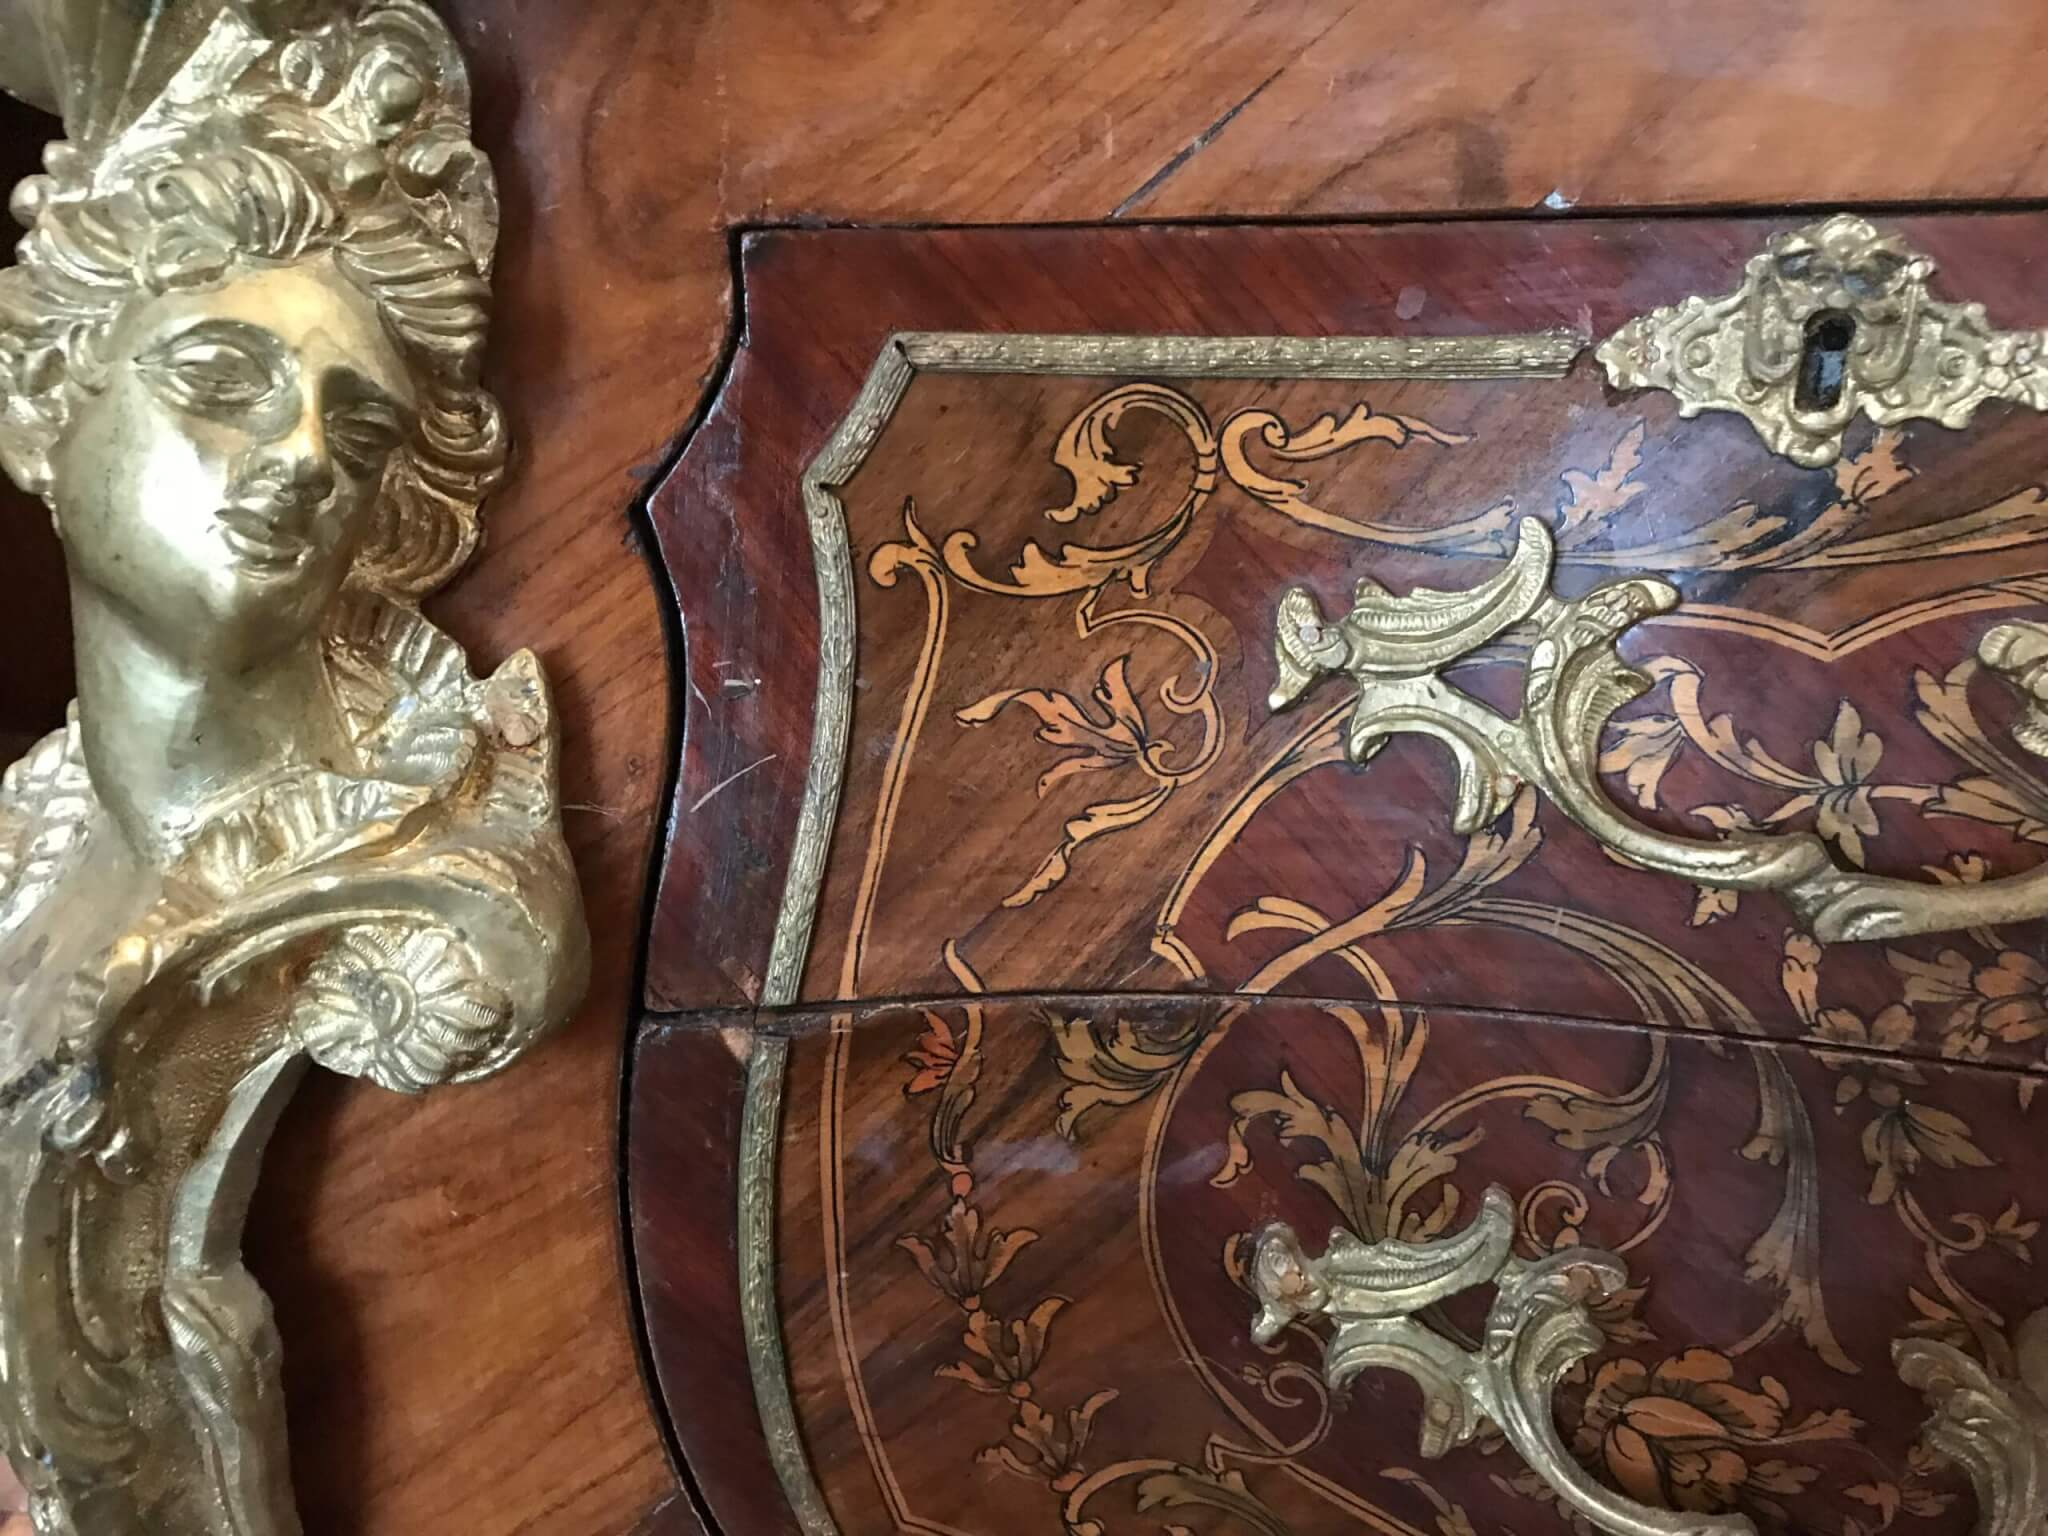 Antique furniture restoration, antique furniture conservation, inlay and veneer conservation, french polish treatments